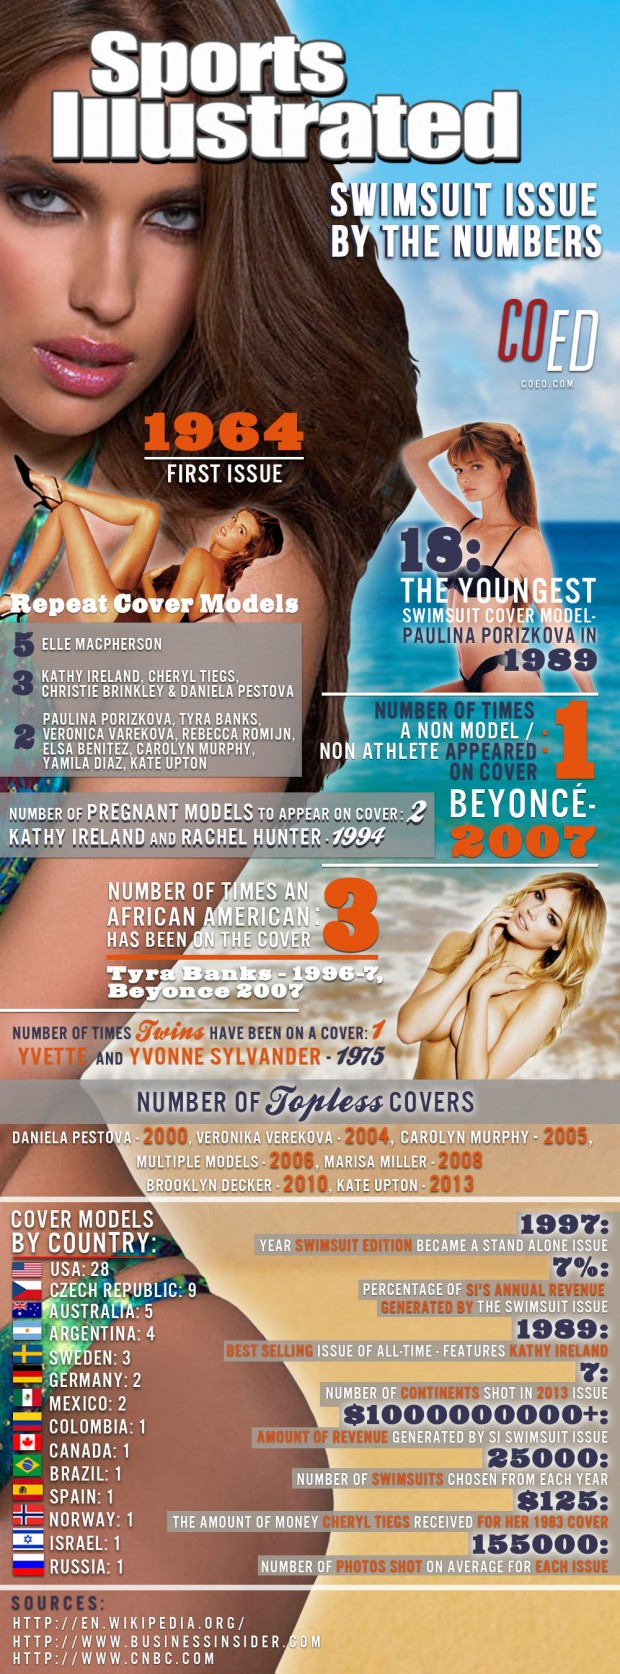 sports illustrated swimsuit issue infographic